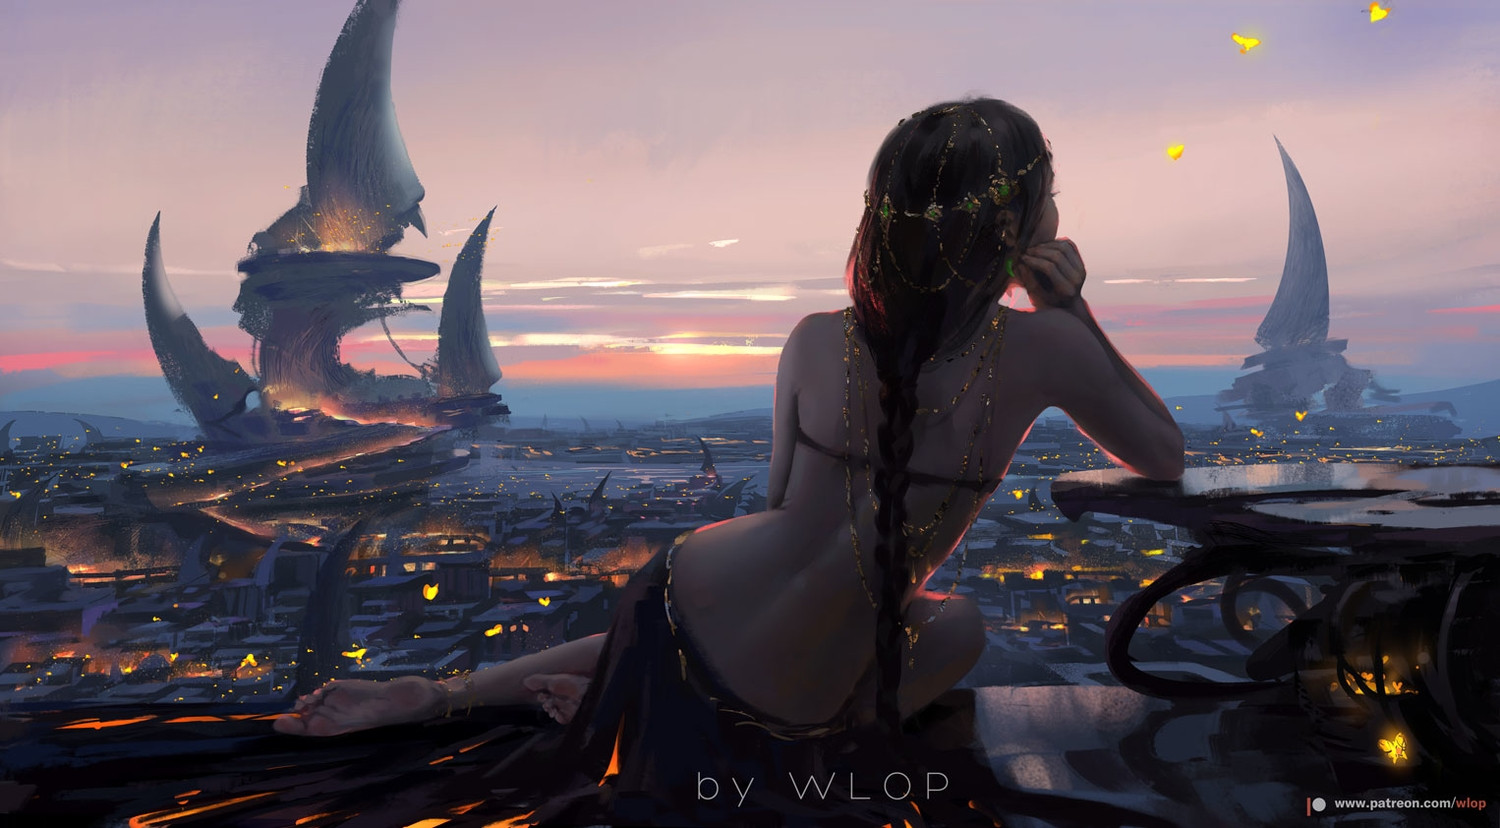 aeolian_(wlop) black_hair braids building butterfly city clouds ghostblade headdress landscape logo long_hair ponytail scenic skirt sky sunset watermark wlop